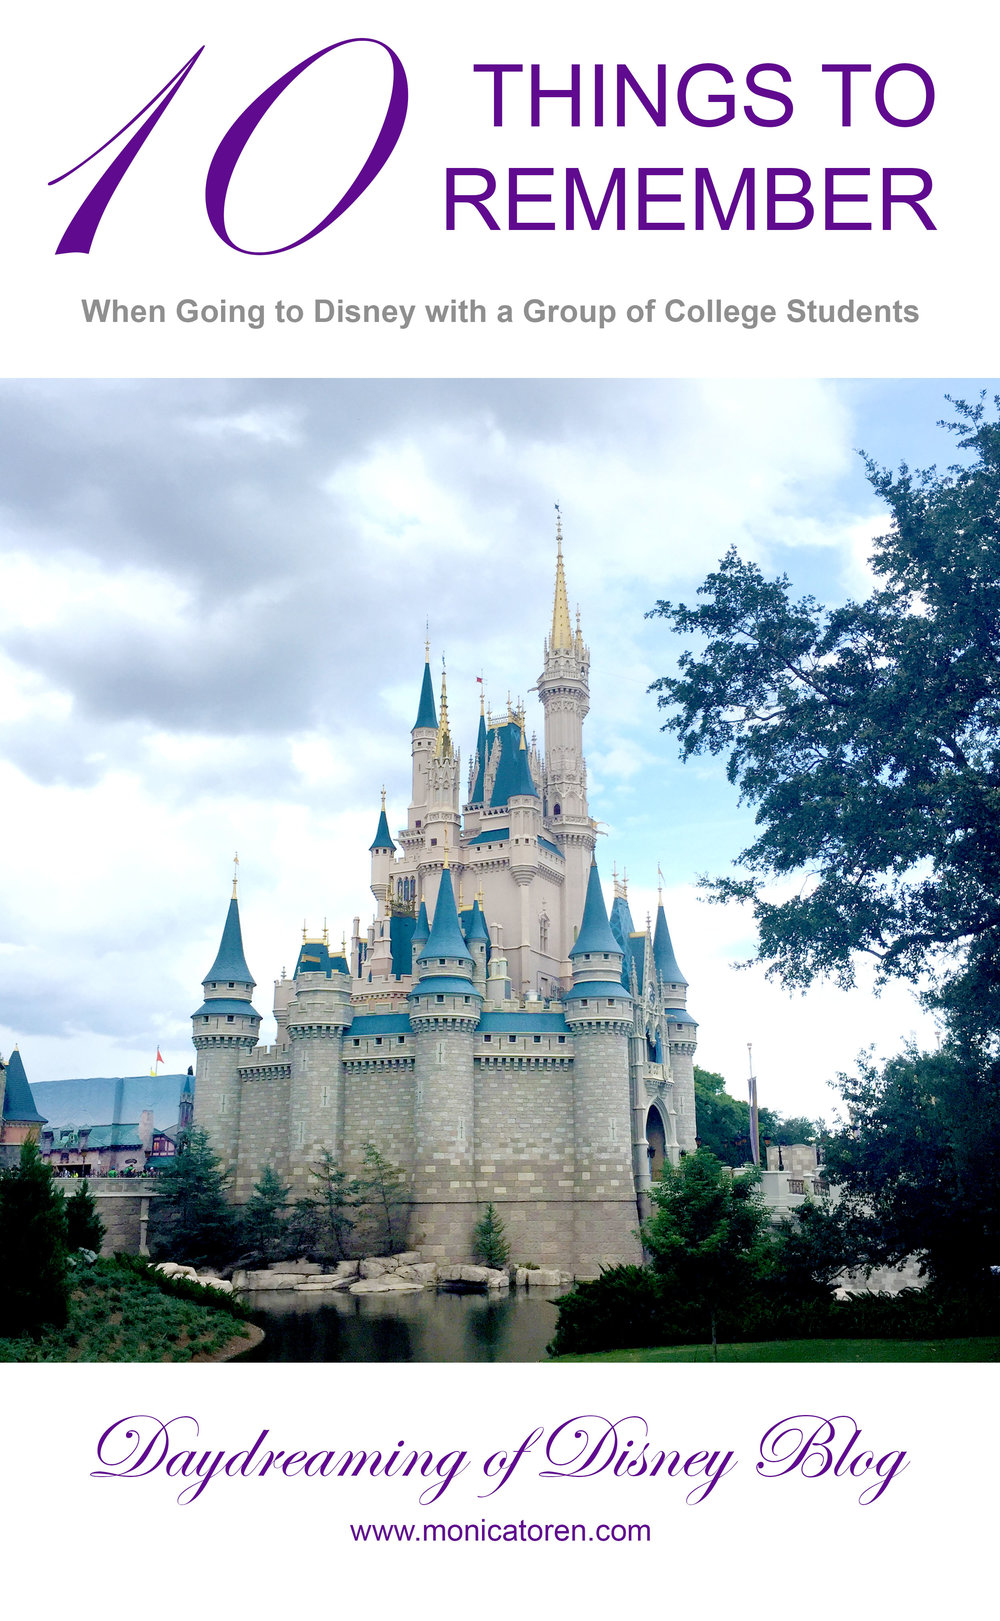 Daydreaming of Disney Blog - Ten Things to Remember When Going to Disney with a Group of College Students